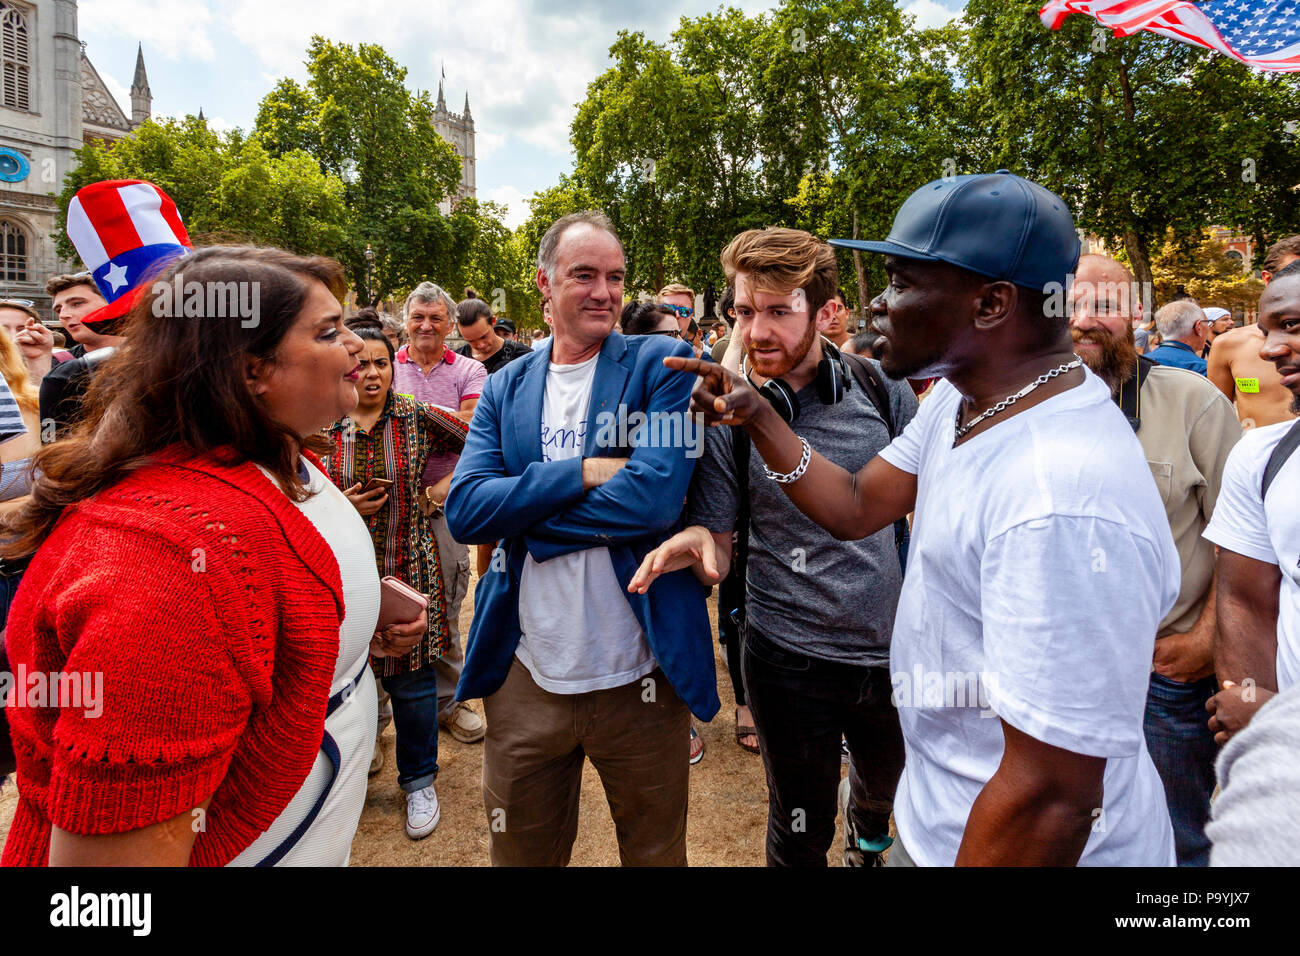 People Arguing In Parliament Square During An Anti Trump Protest, London, England - Stock Image